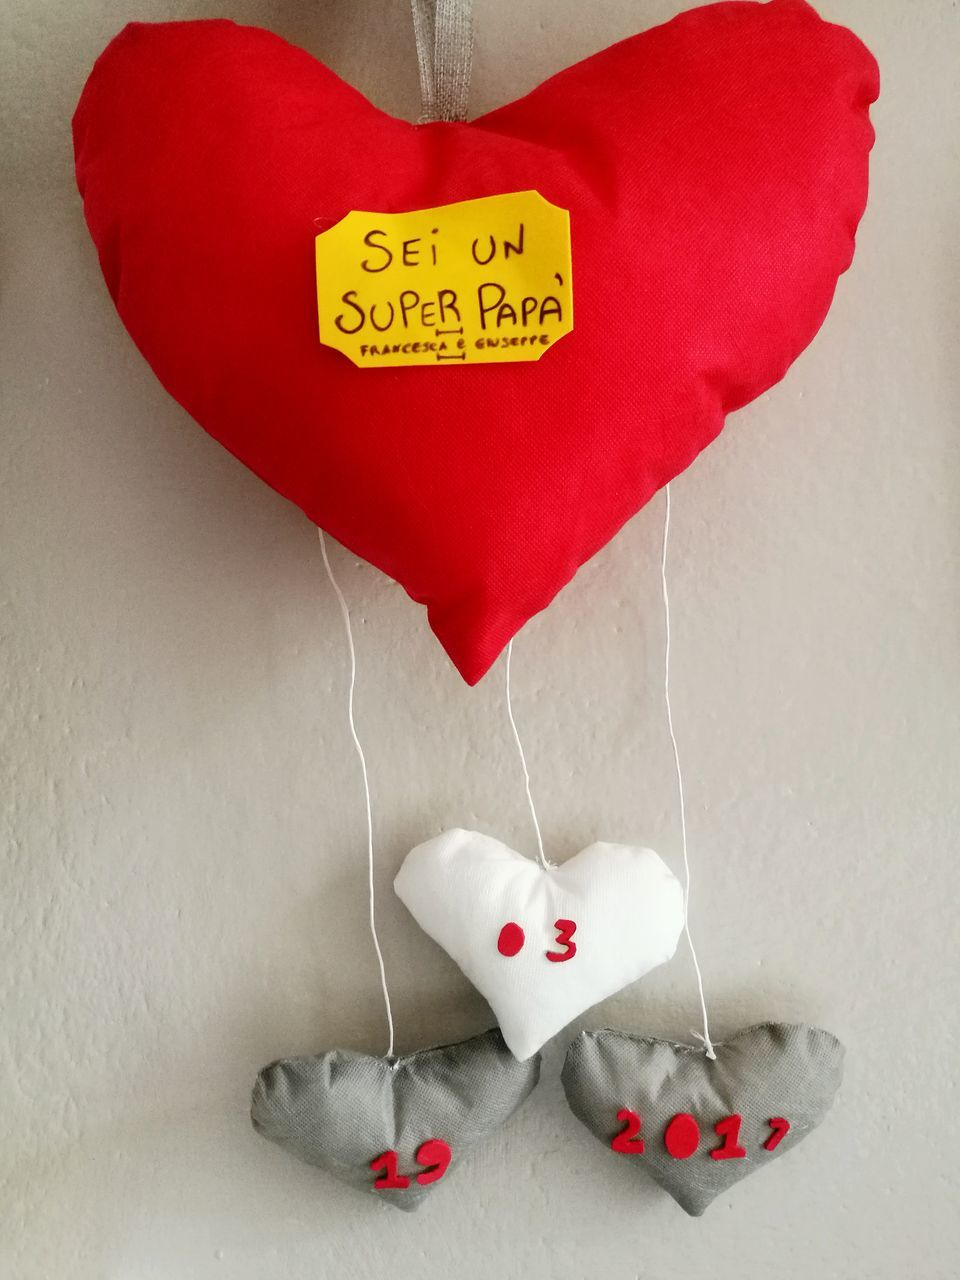 heart shape, love, red, text, art and craft, romance, communication, no people, message, indoors, celebration, balloon, day, close-up